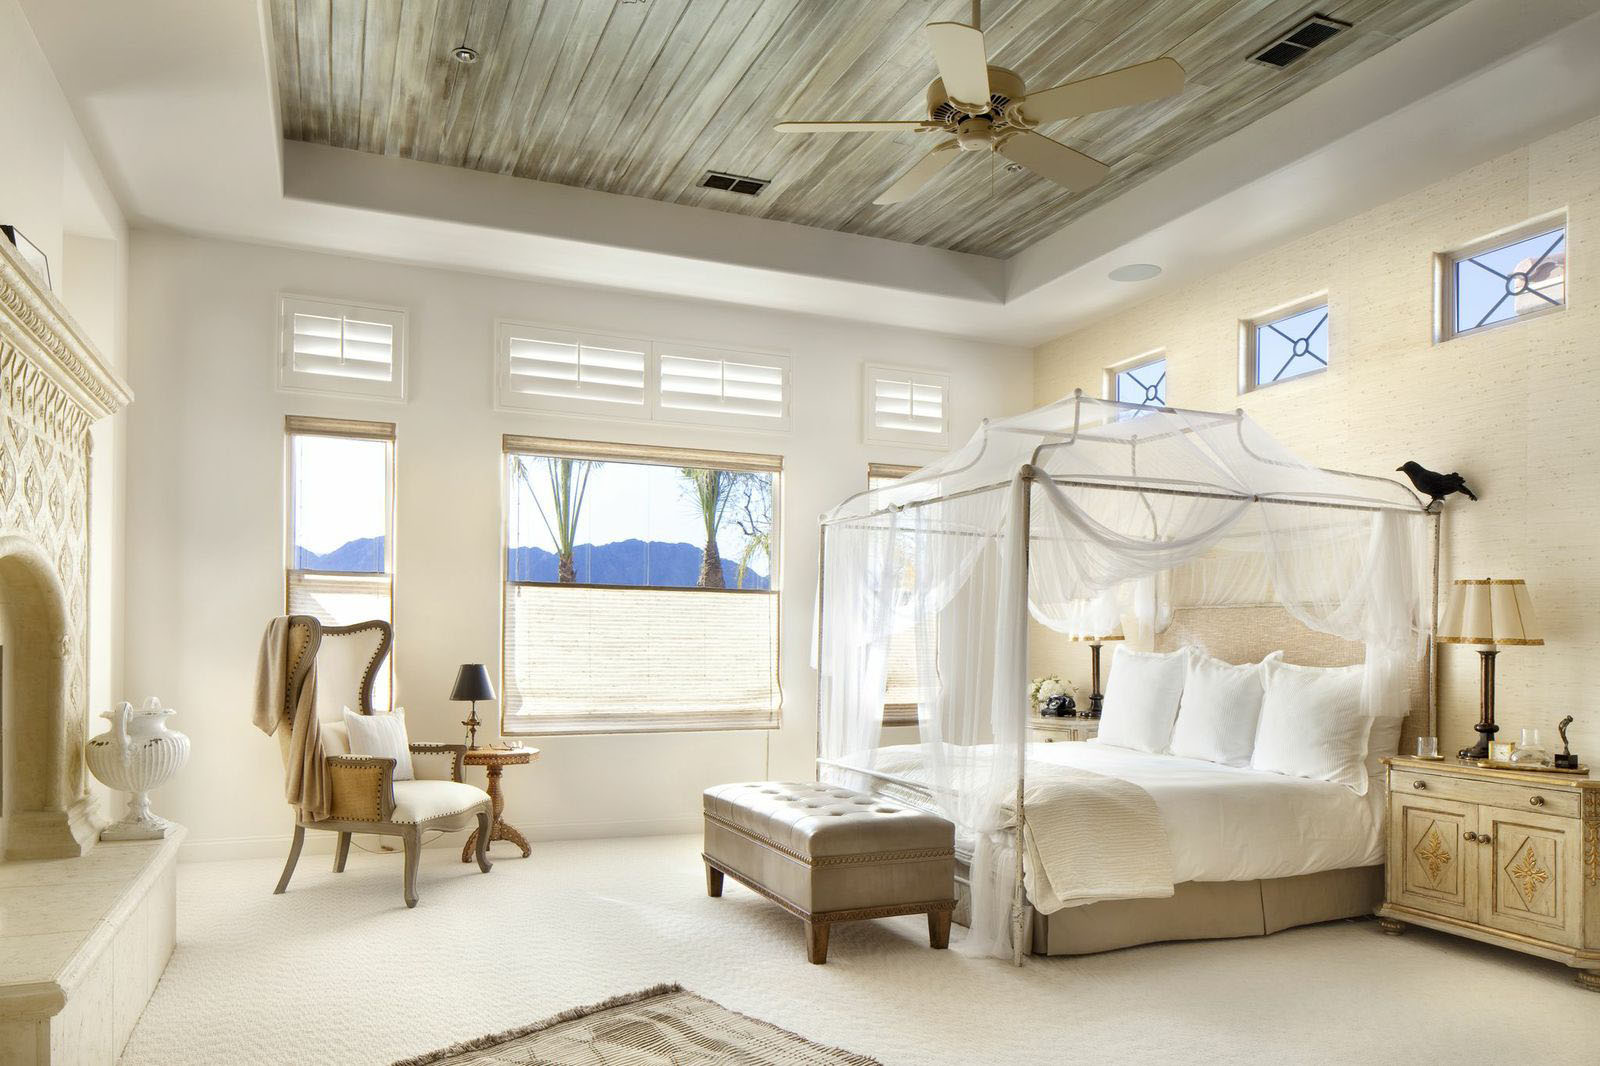 Delicieux Lavish Bedroom With Tufted Bench Also Ceiling Van Plus Modern Canopy Bed